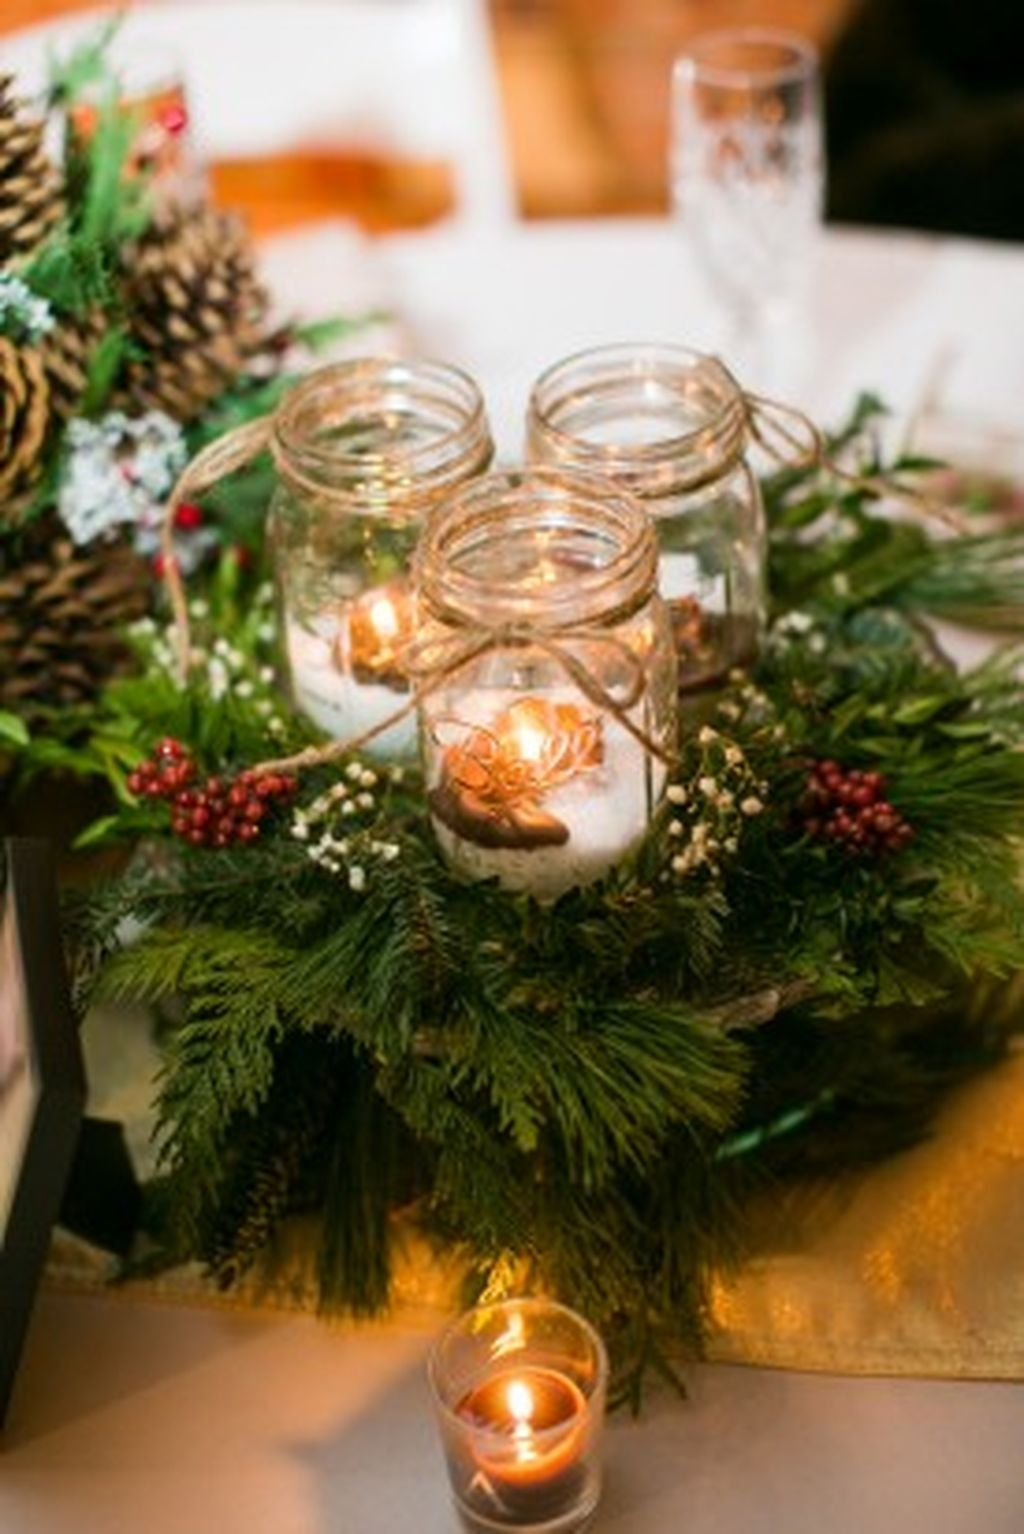 Romantic Christmas Centerpieces Ideas With Candles 38